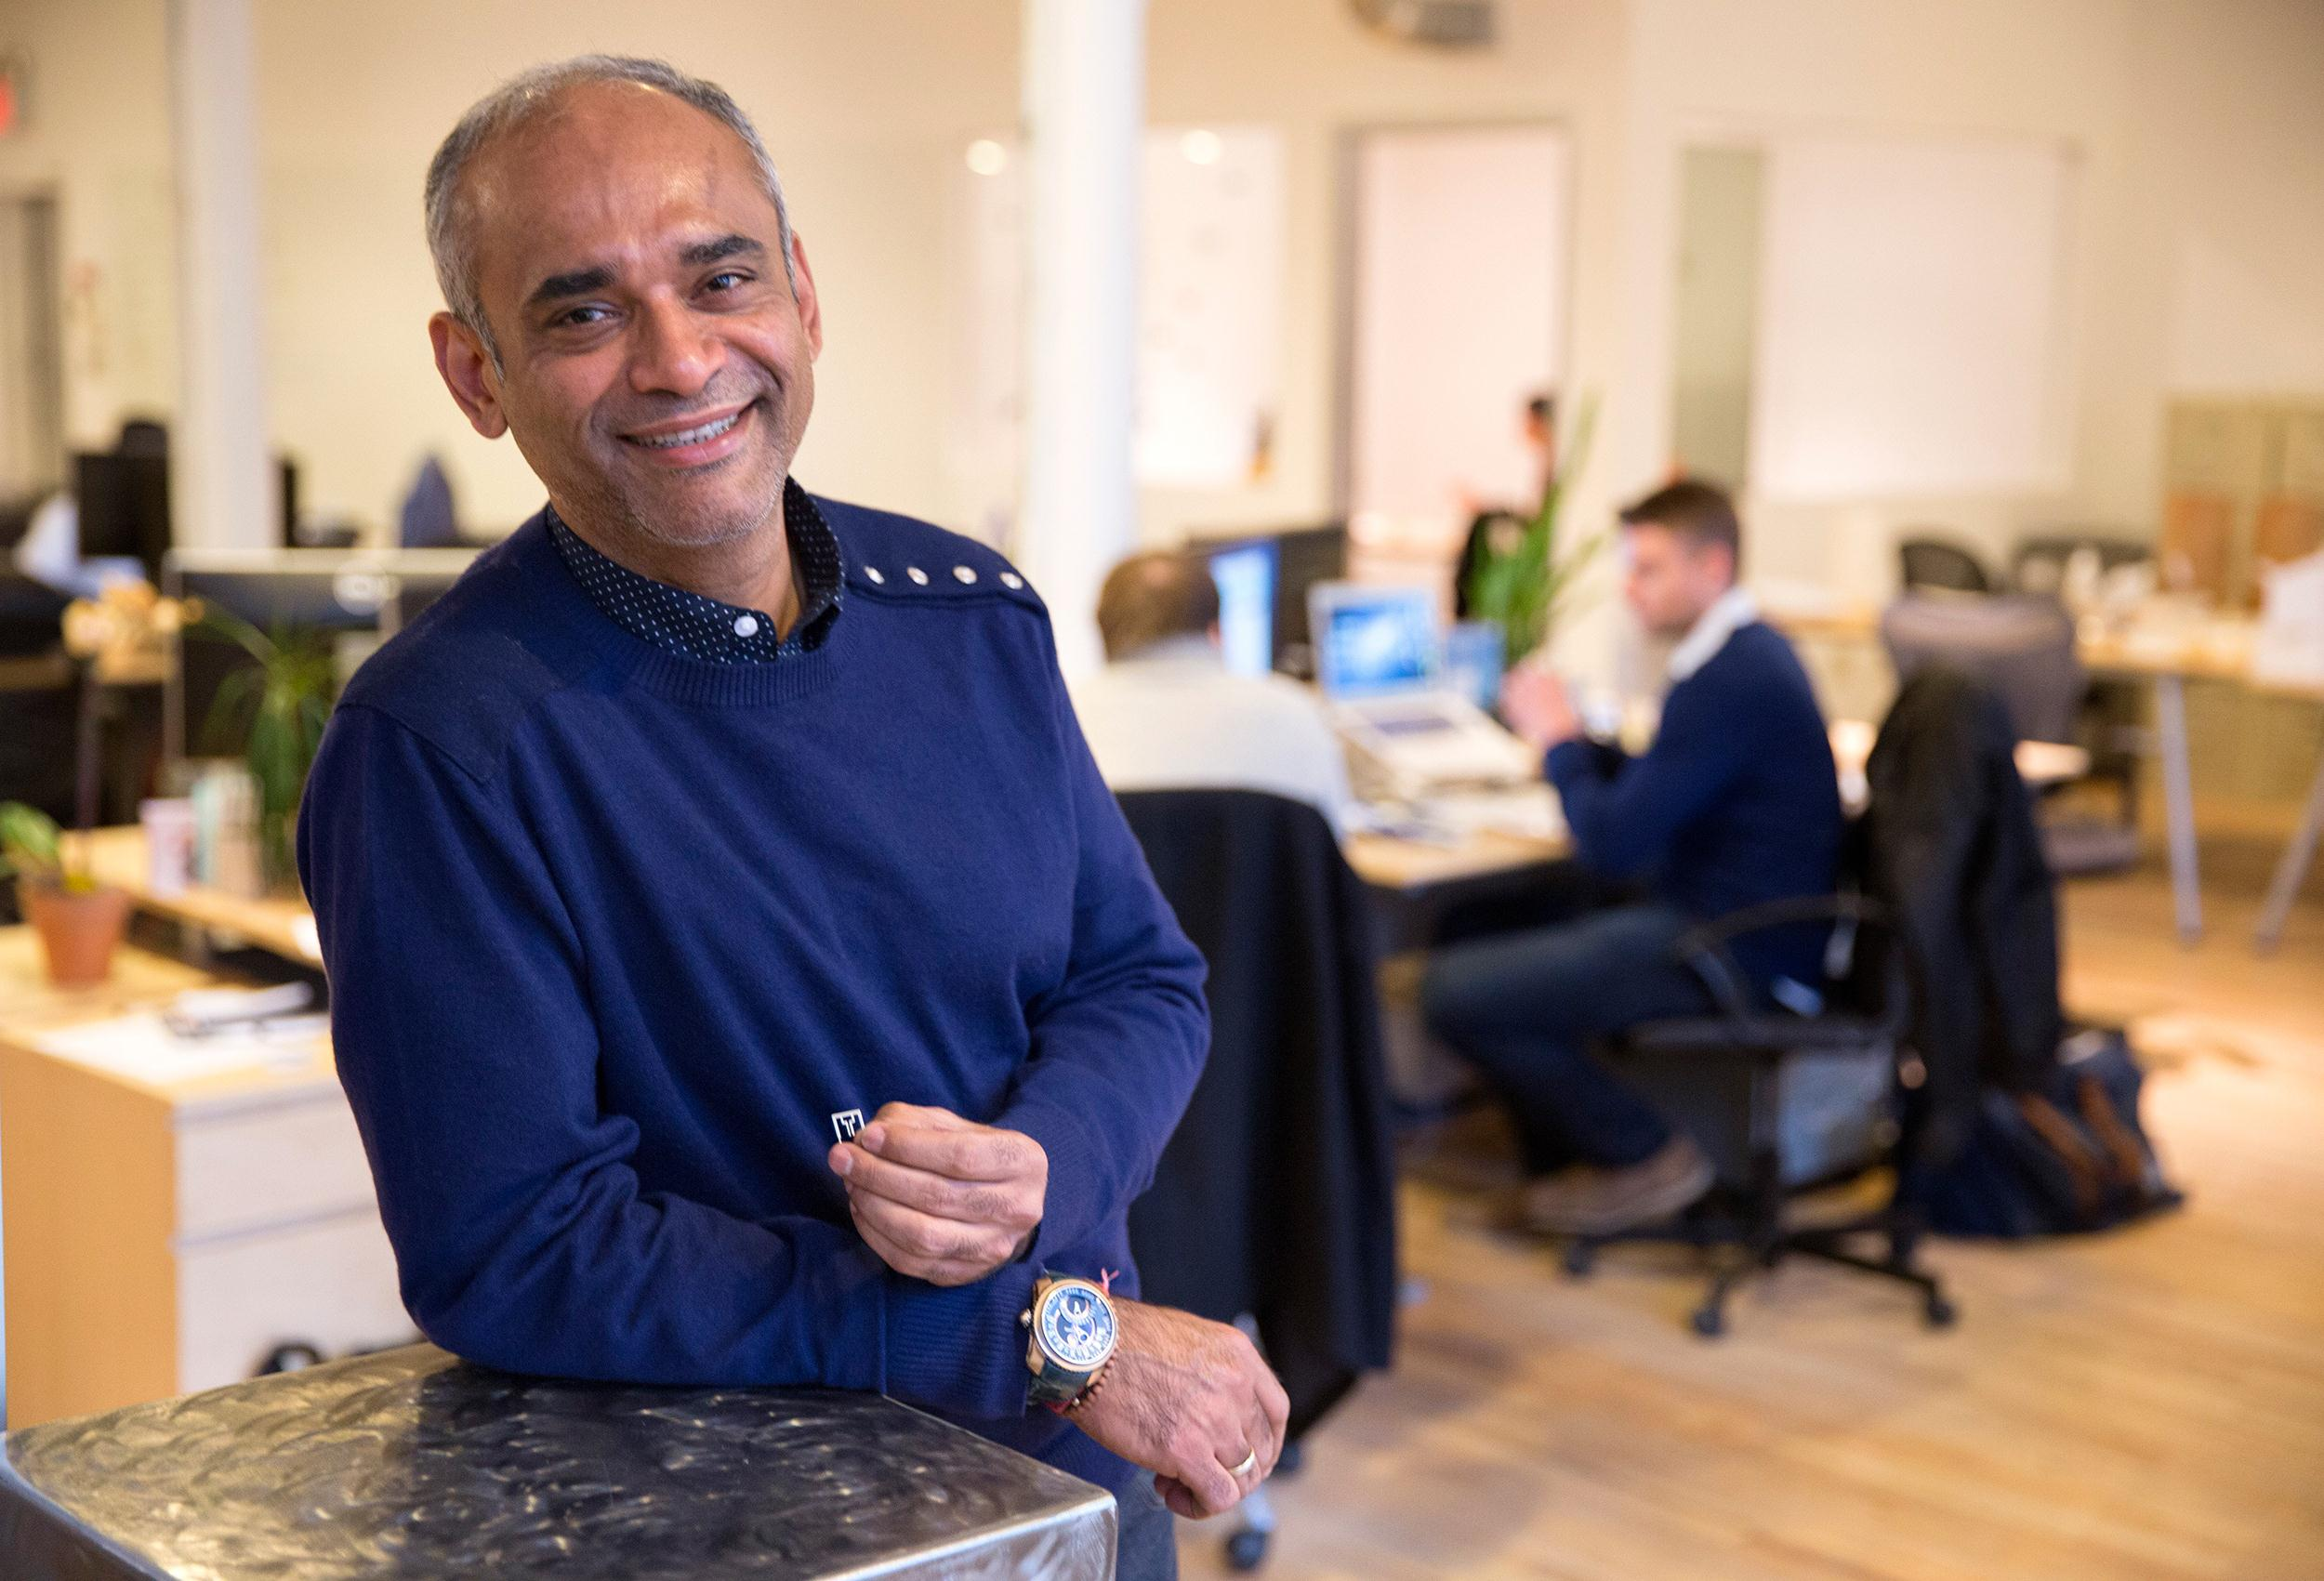 Image: Chet Kanojia, chief executive of Aereo, holds a tiny antenna designed to grab over-the-air television signals, at the company's office in New York.